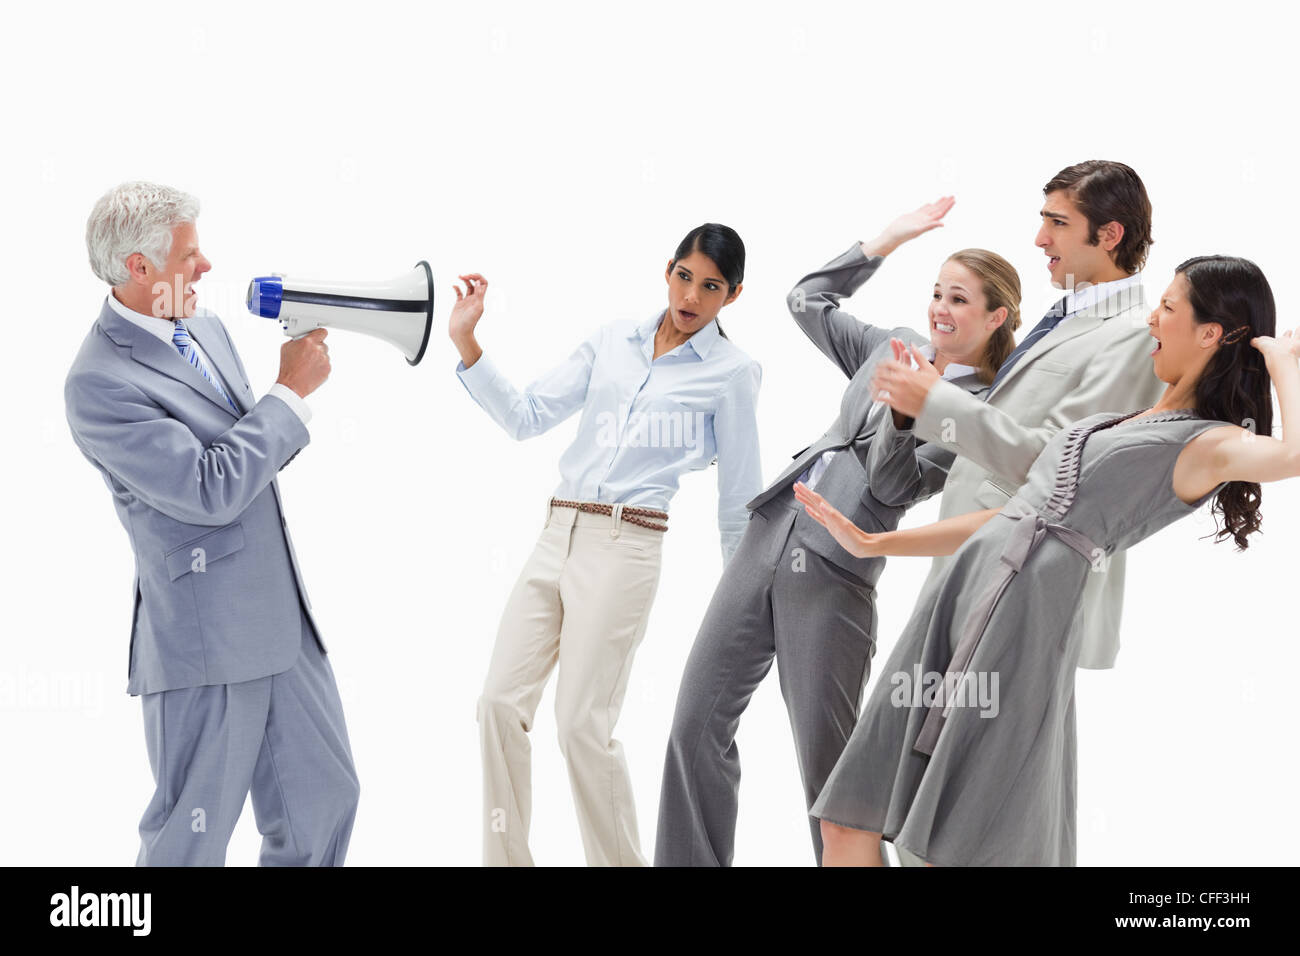 Man yelling in a megaphone at stunned business people - Stock Image